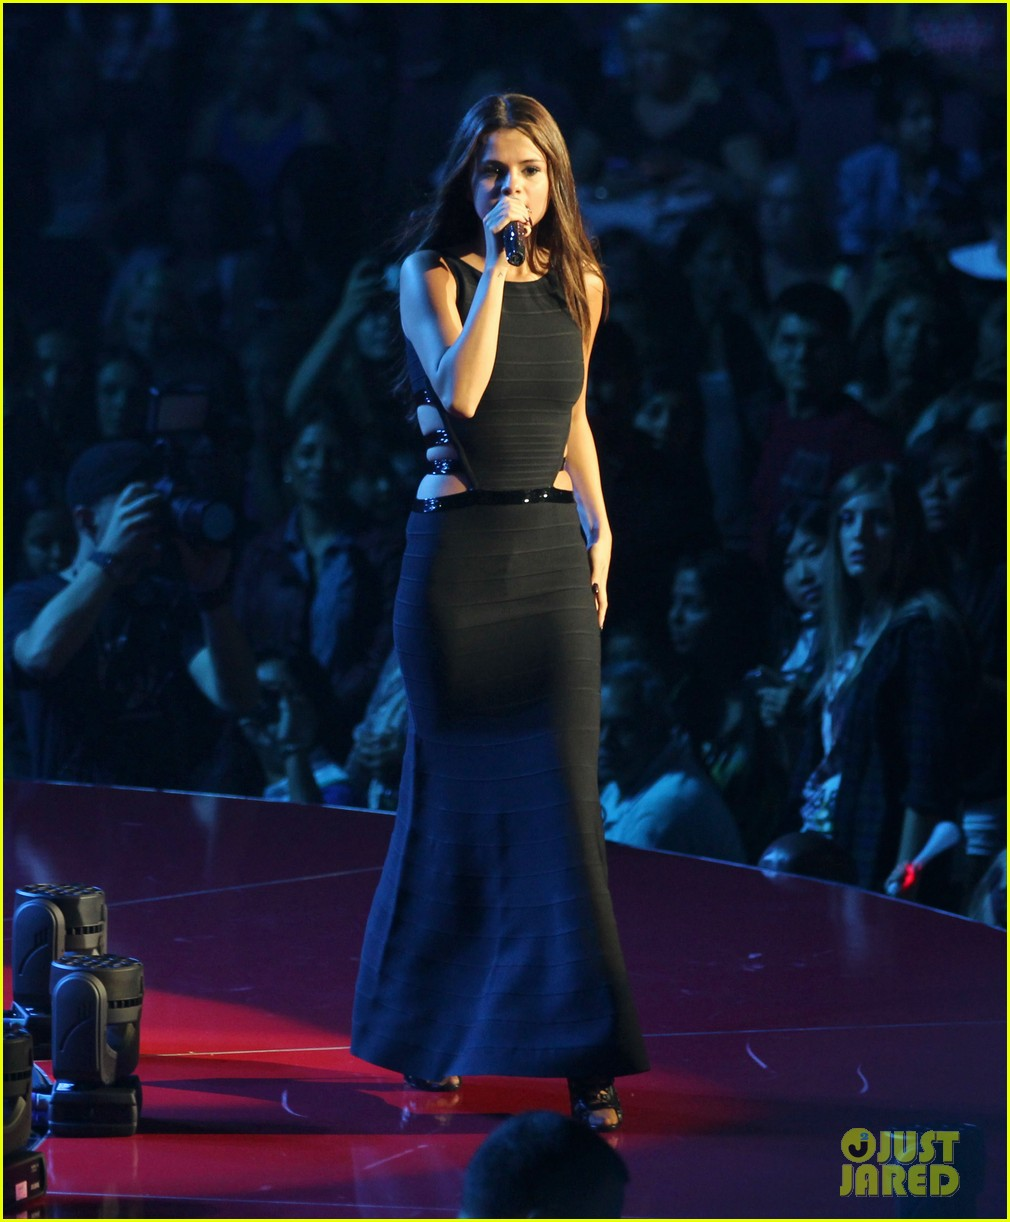 selena gomez stars dance opening night tour pics 35